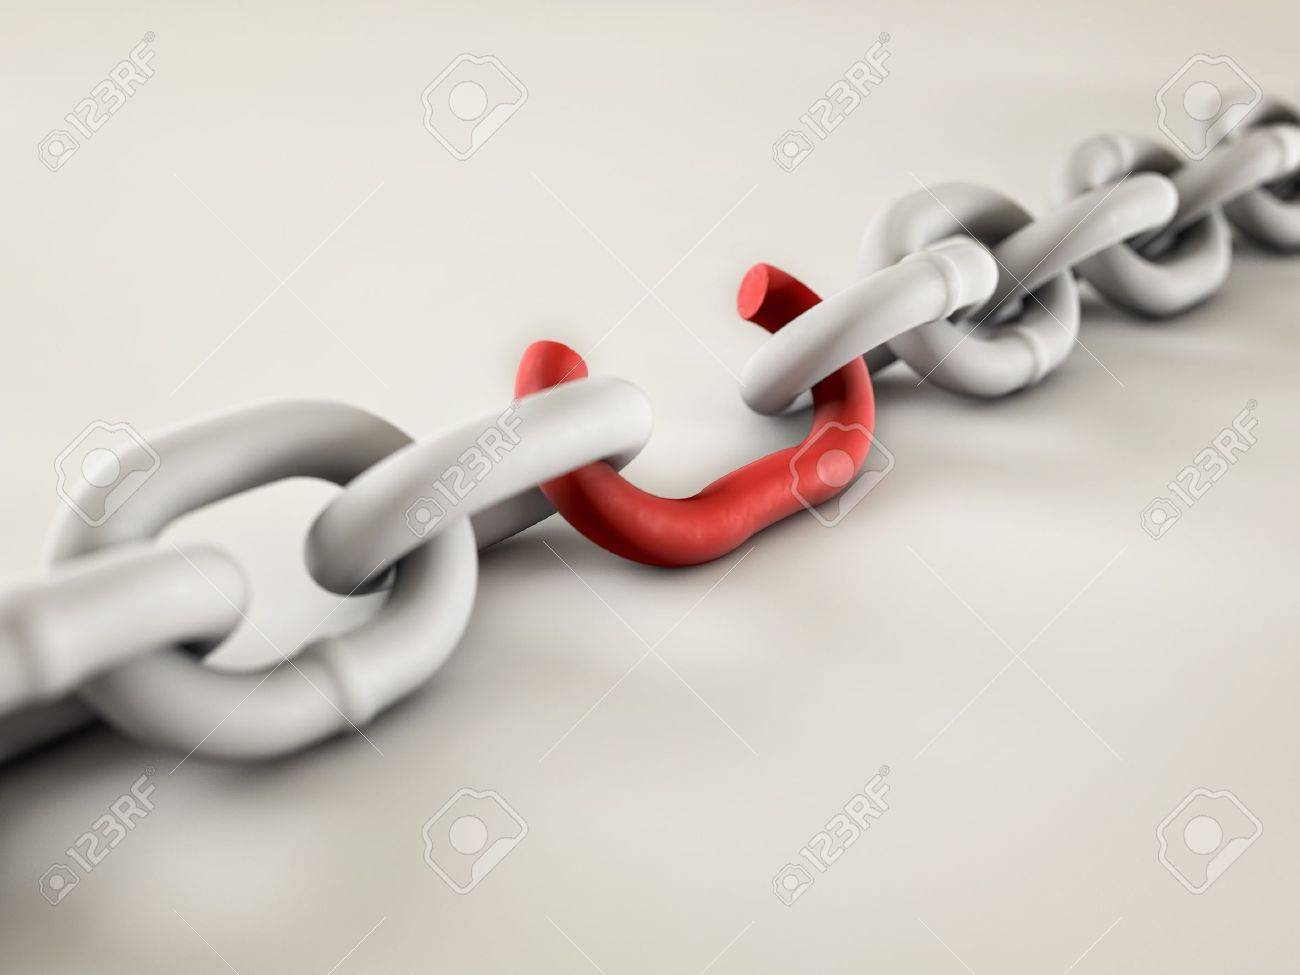 A chain with a broken link highlighted red to highlight the weak link. Stock Photo - 16948324